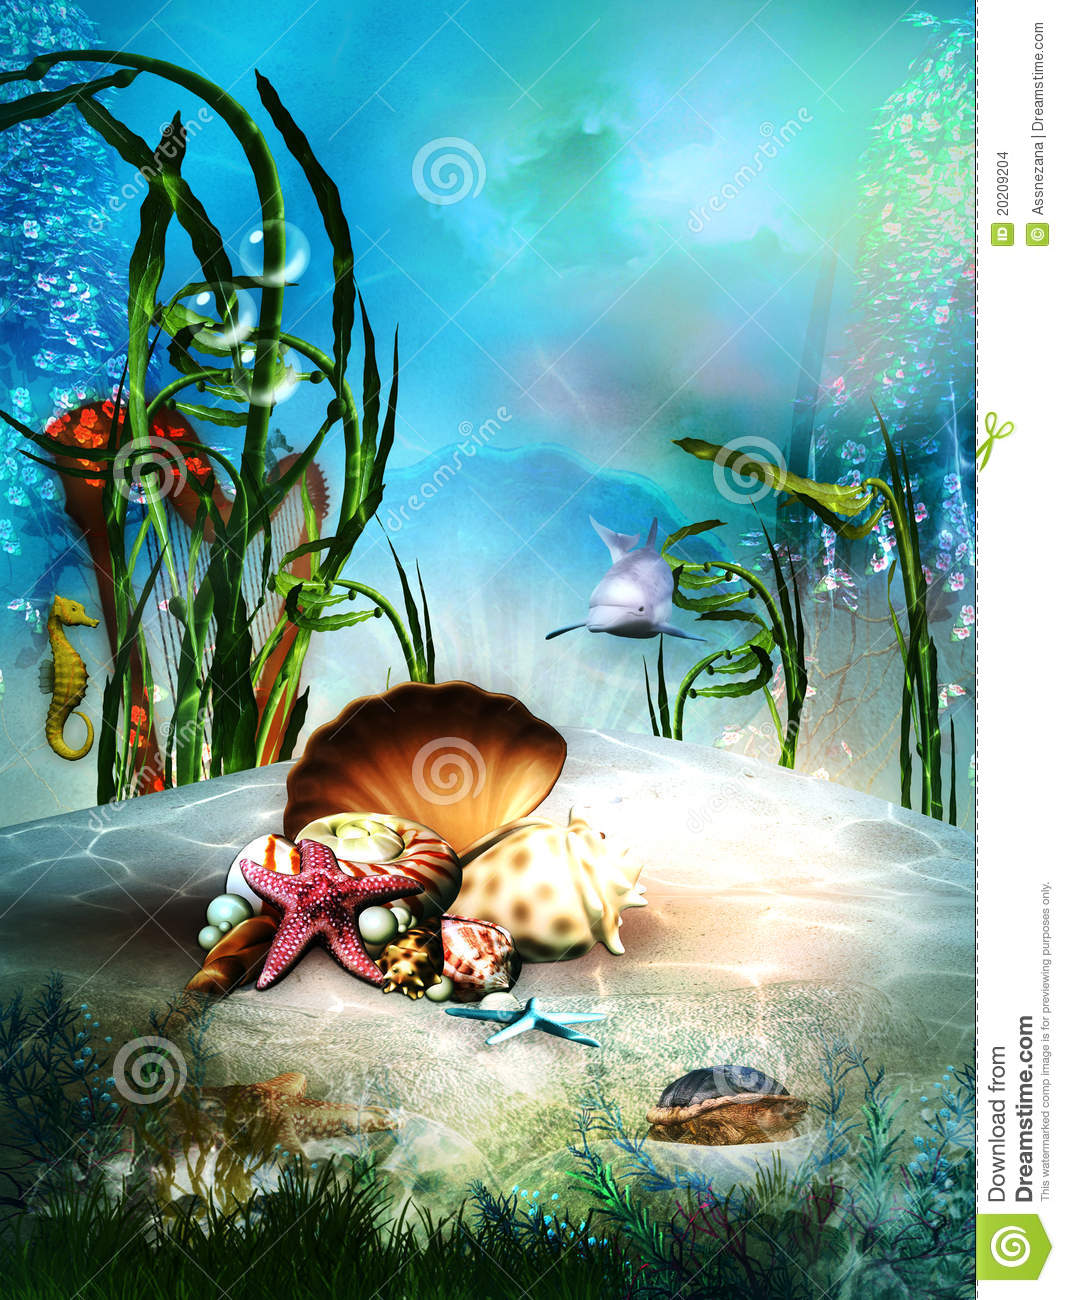 More similar stock images of ` Fantasy underwater sea life `